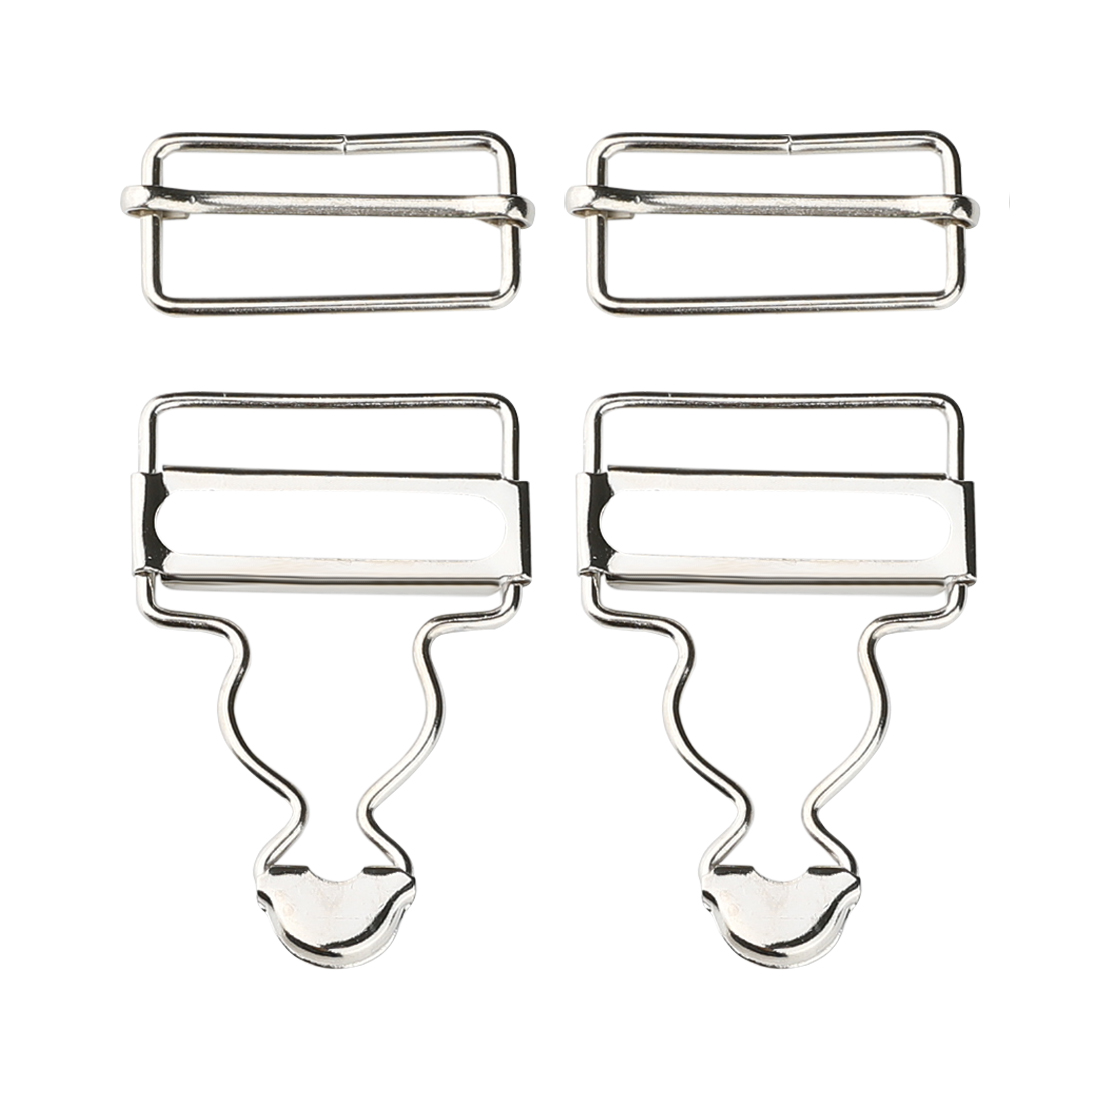 Dungaree Strap Adjuster Fastener Suspender Buckle Silver Tone 5Pcs